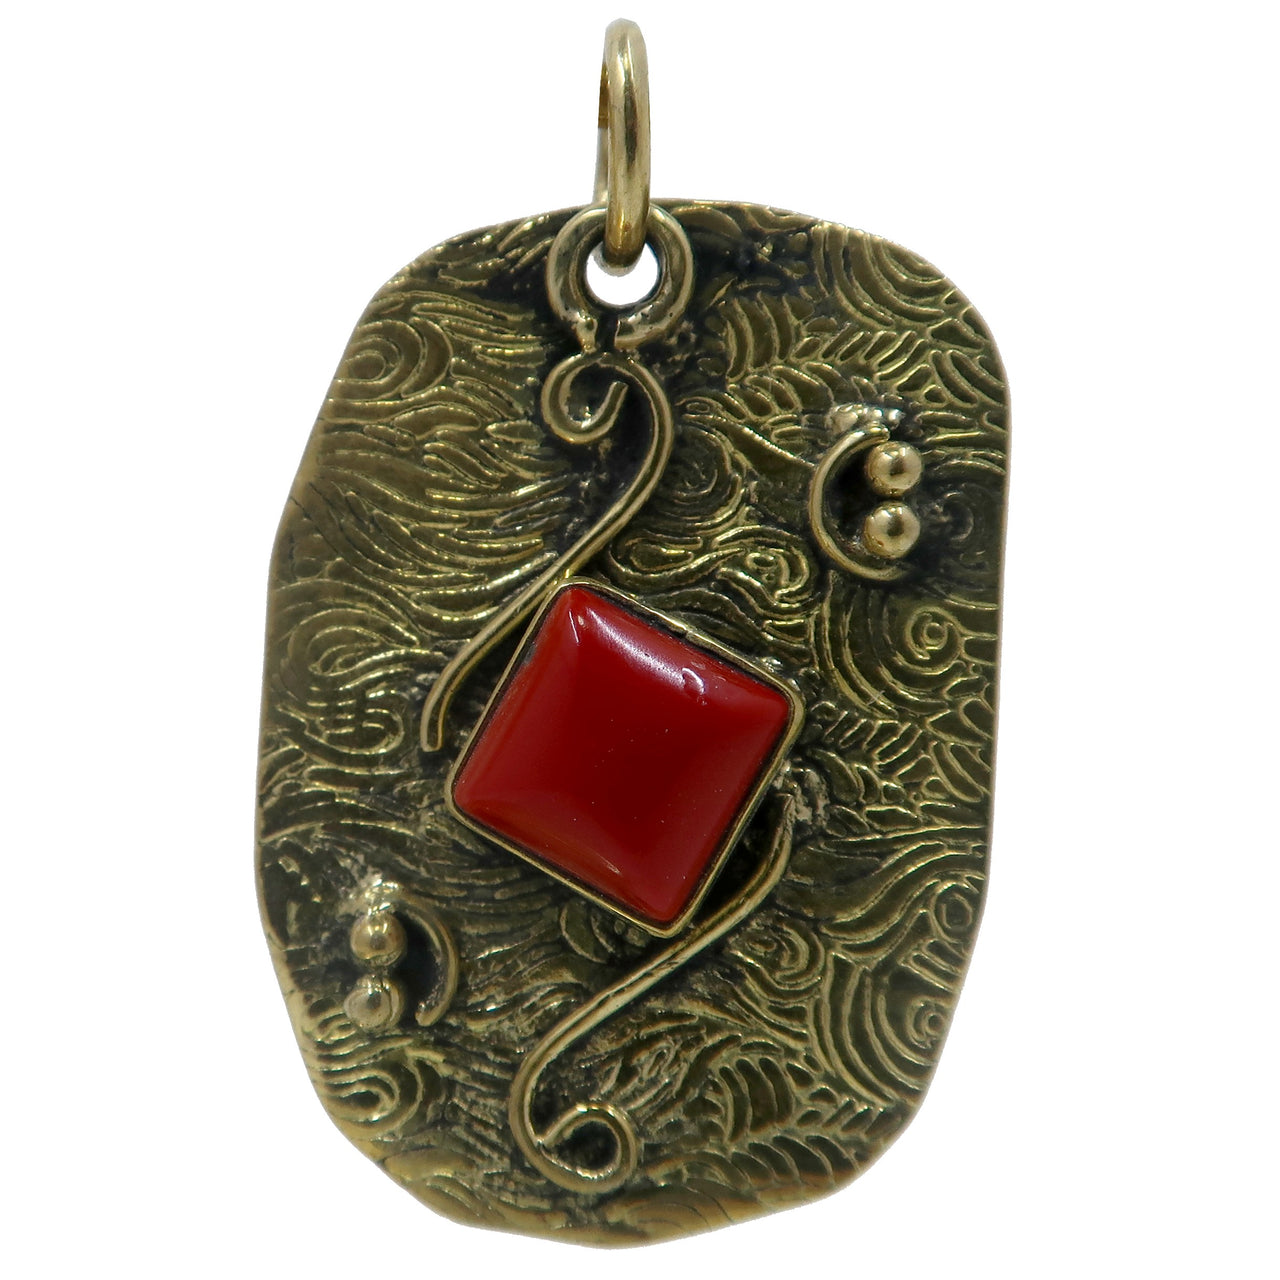 Coral Pendant Boutique Red Square Gemstone Textured Tibetan Brass Charm B01 (Wave)